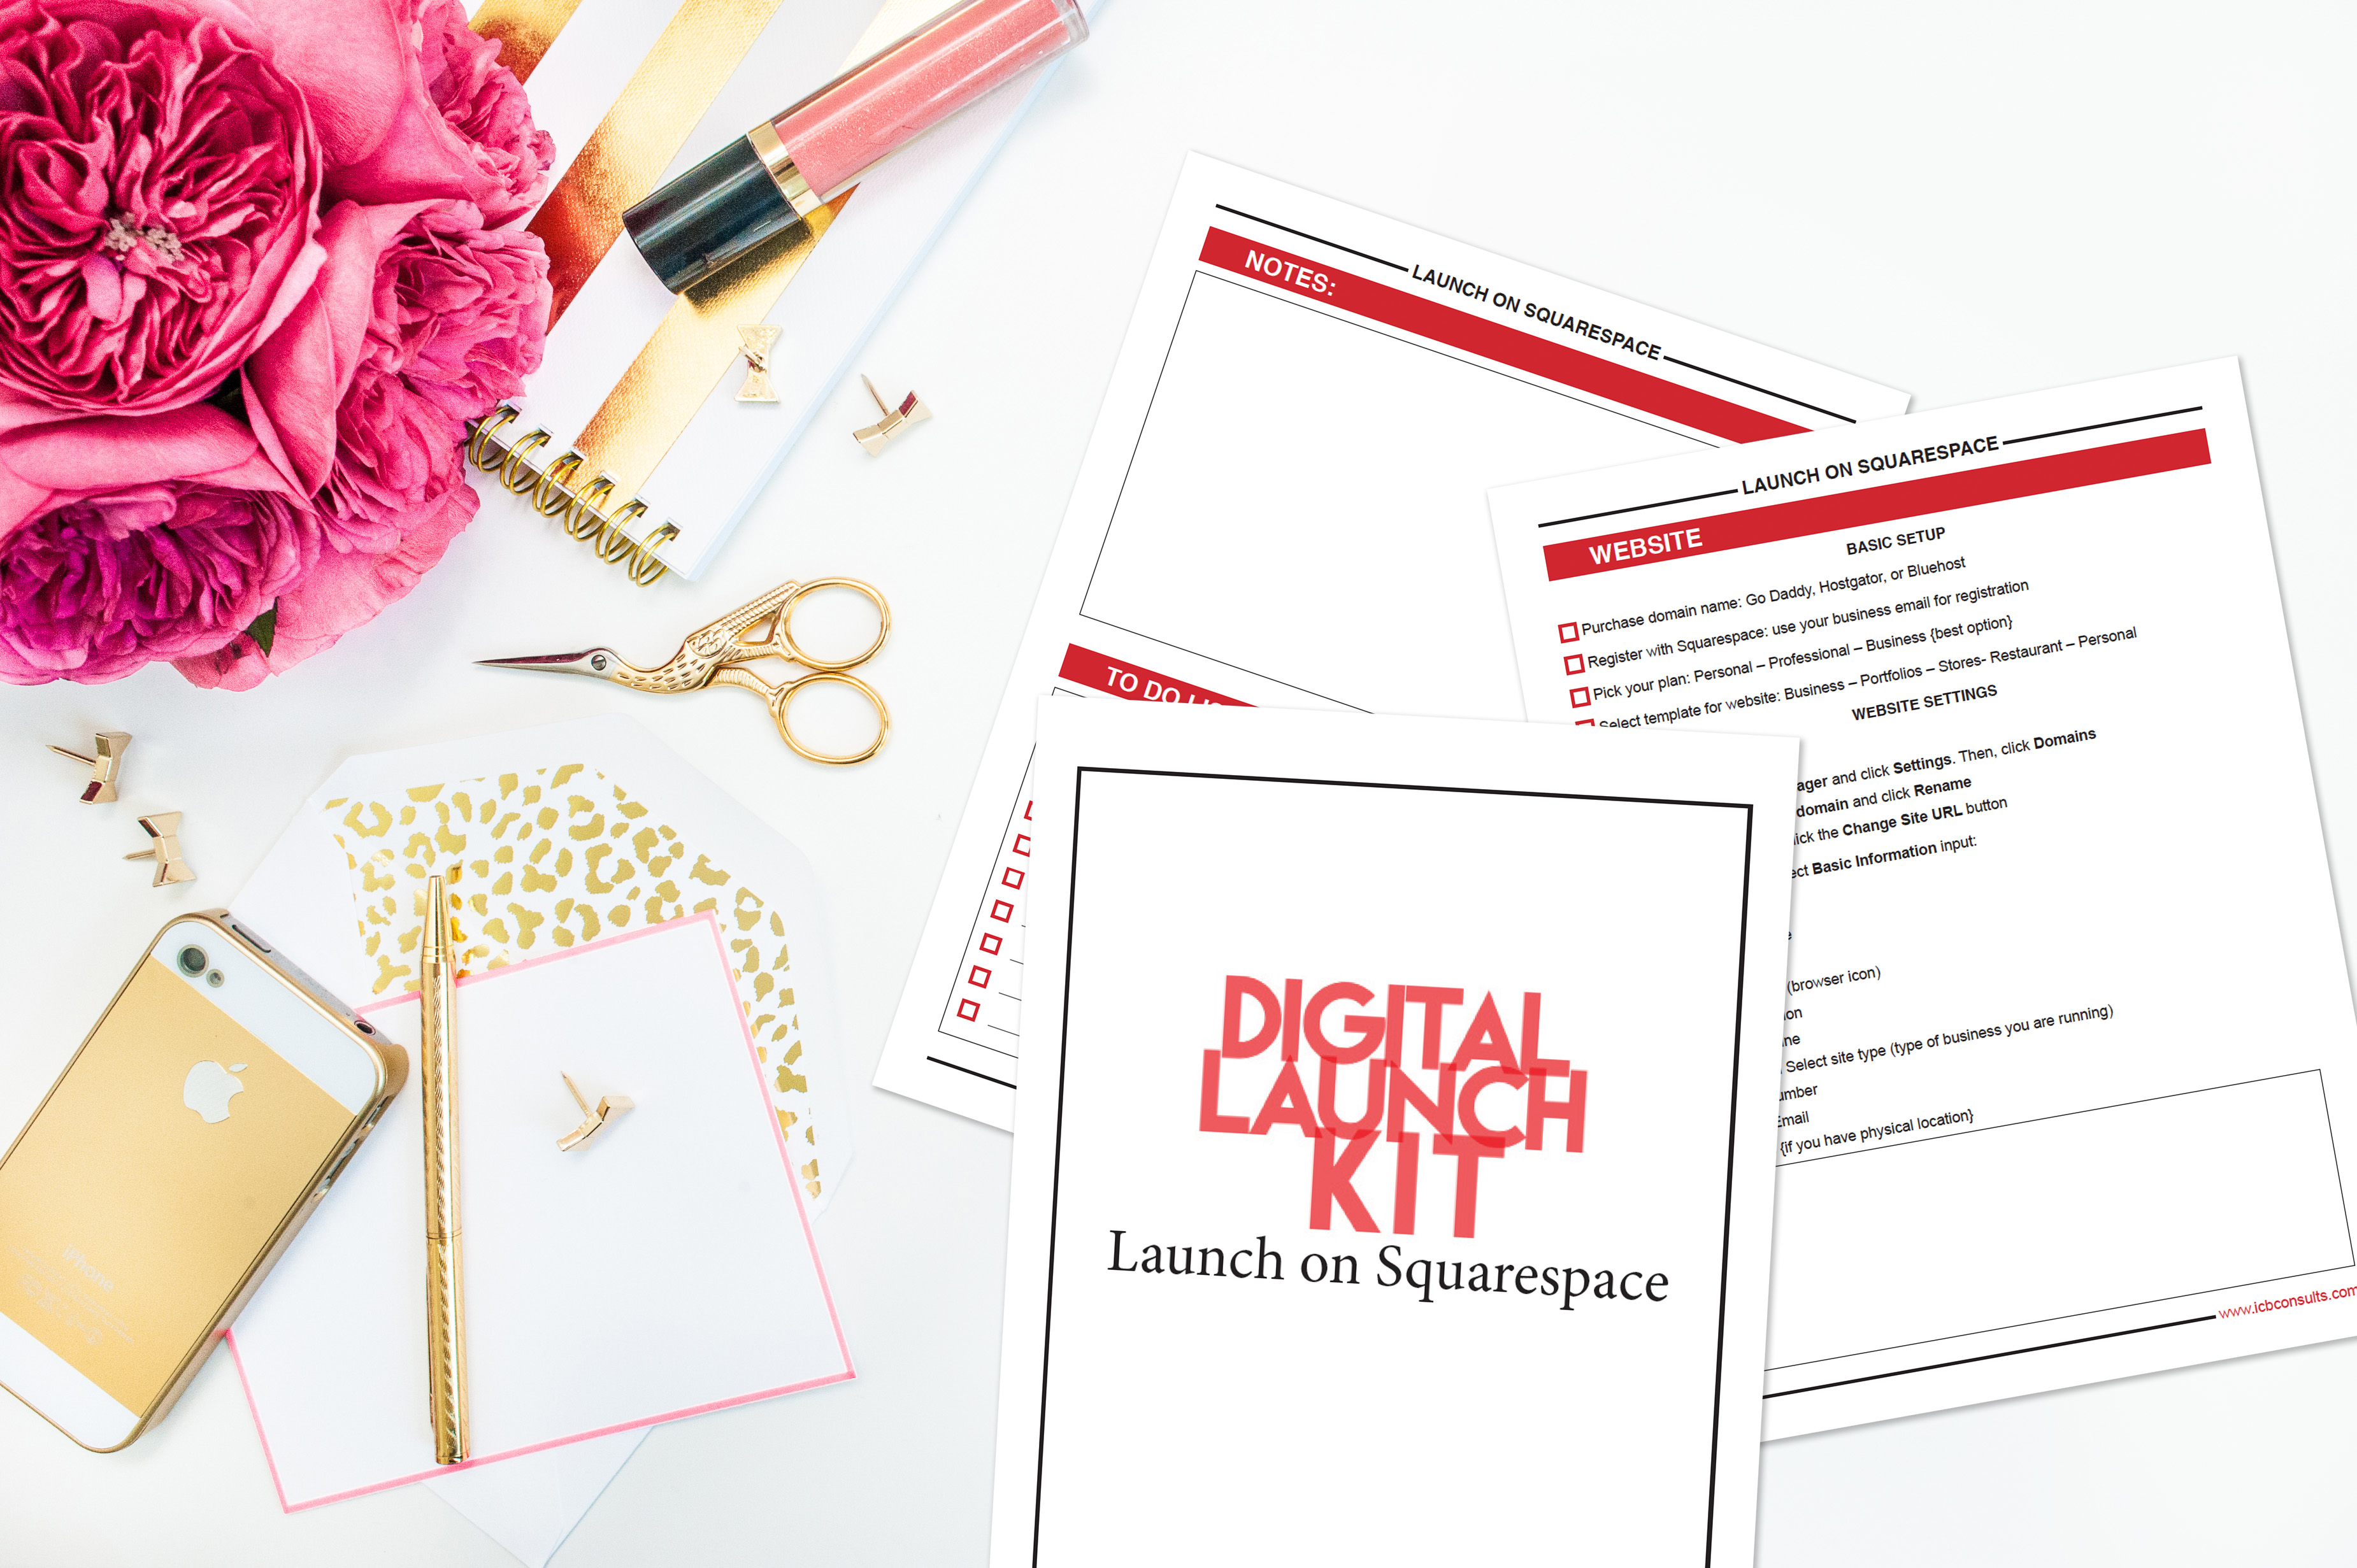 Launch on Squarespace